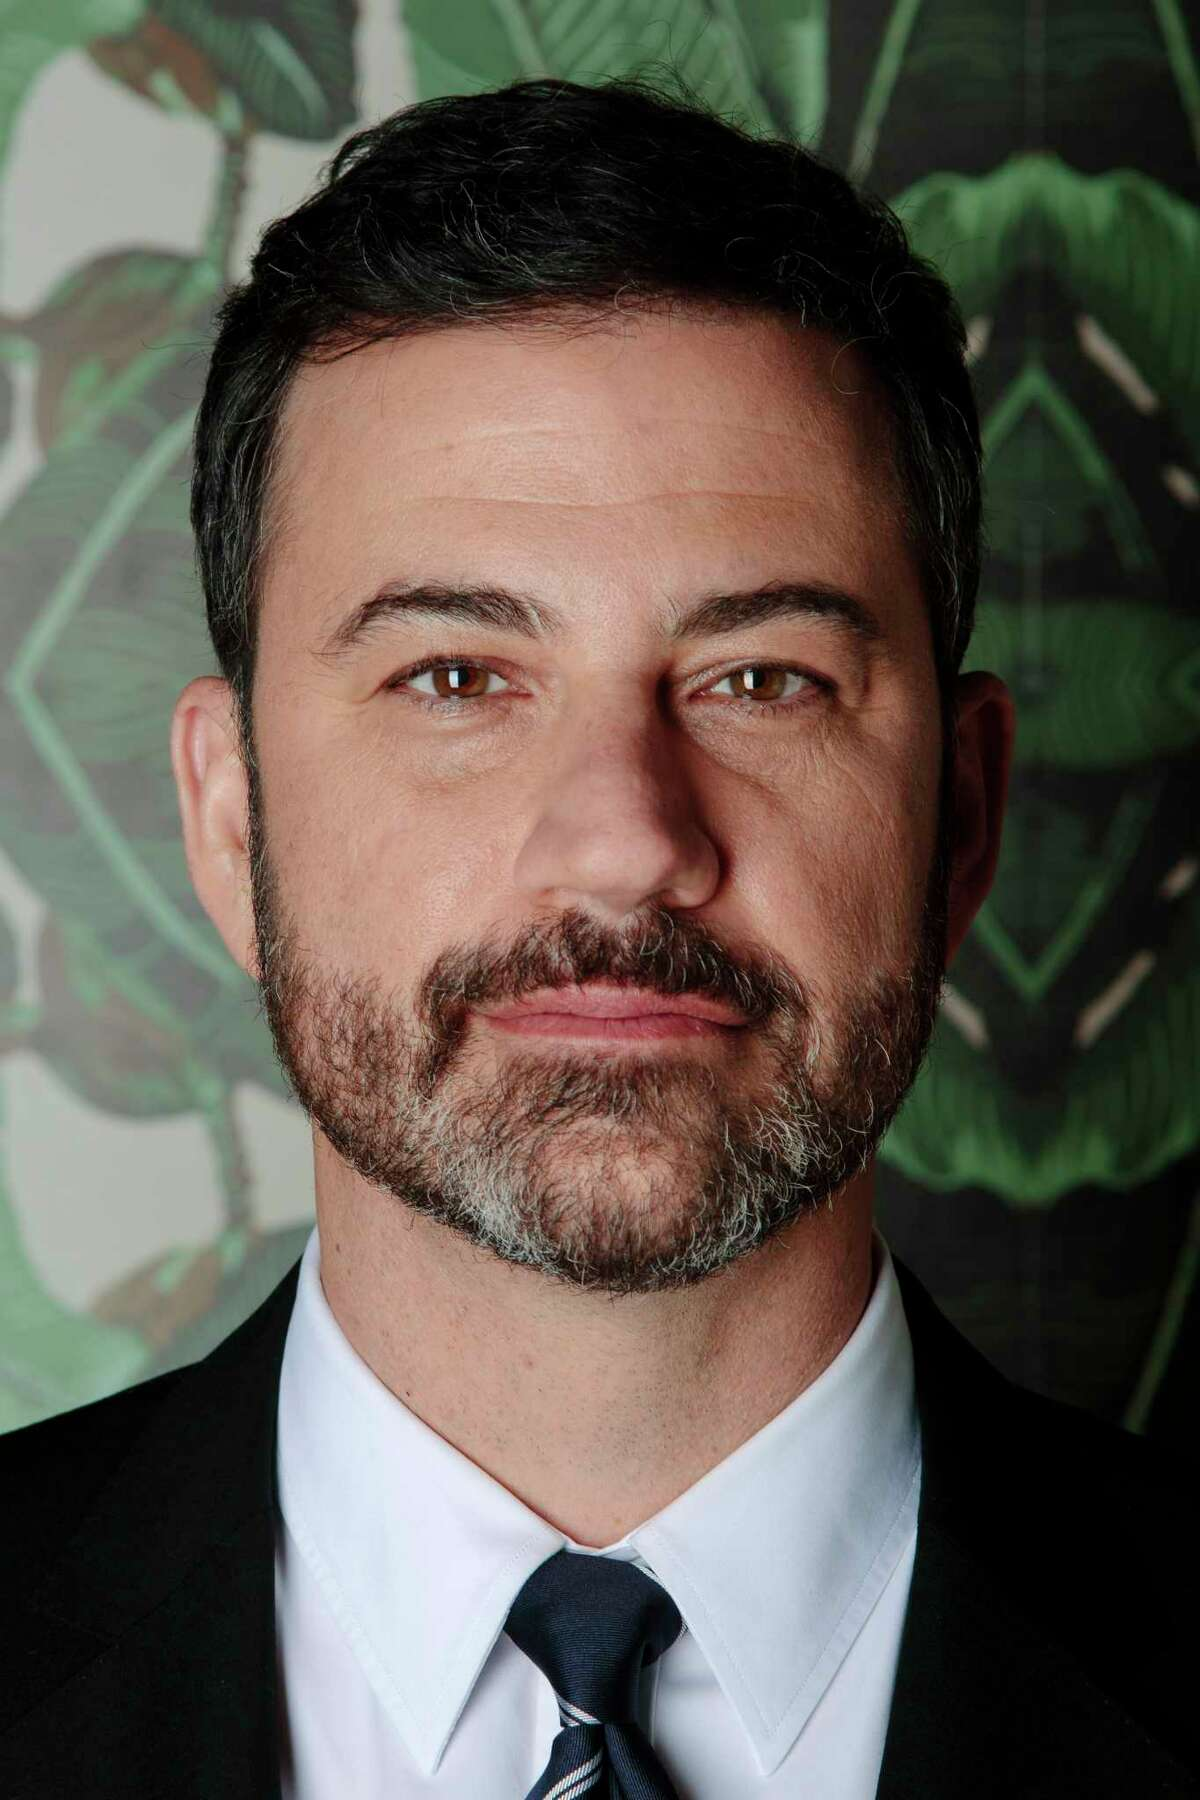 Jimmy Kimmel in the Jimmy Kimmel Live! green room, in Los Angeles, Feb. 16, 2017. Kimmel has emerged as a vocal critic of the latest Republican attempts to repeal the Affordable Care Act, arguing during his late-night show that the bill falls well short of promises its co-sponsor, Sen. Bill Cassidy, made to him in an appearance in May. (Brinson+Banks/The New York Times)-- PART OF A COLLECTION OF STAND-ALONE PHOTOS FOR USE AS DESIRED IN YEAREND STORIES AND RECAPS OF 2017 -- ORG XMIT: NYT146